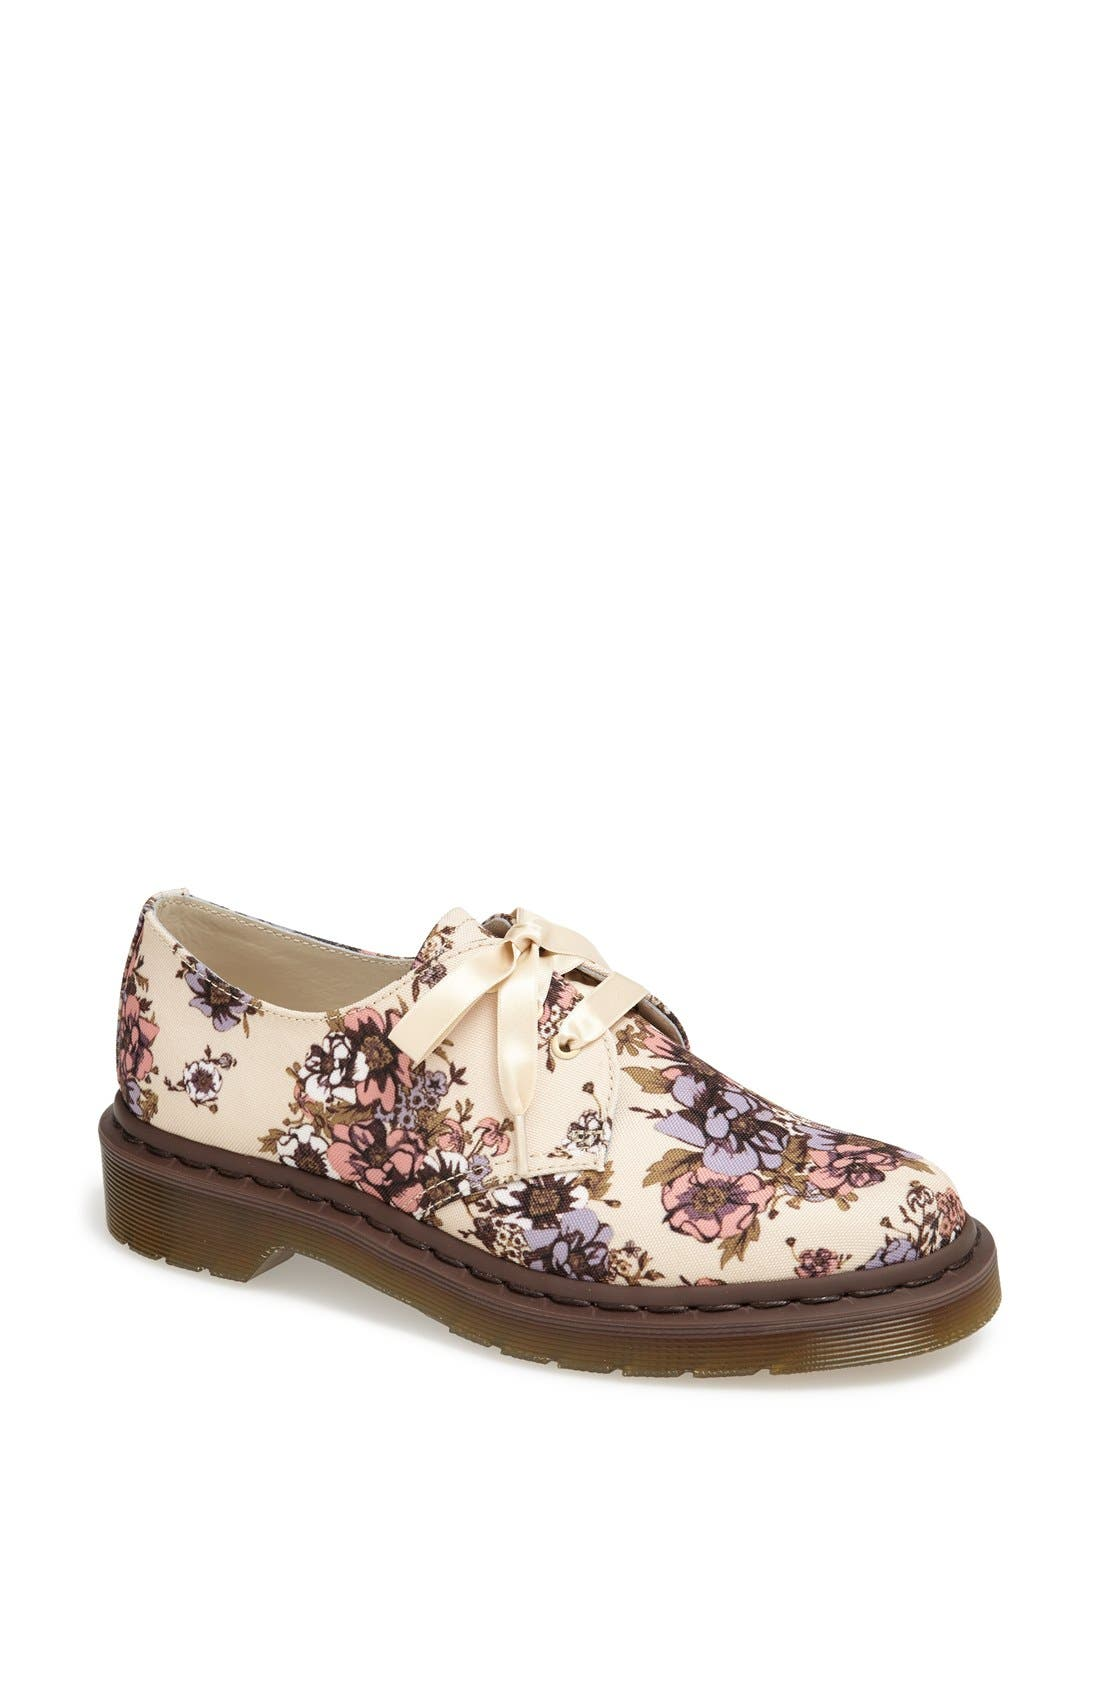 Alternate Image 1 Selected - Dr. Martens 3-Eye Oxford (Women)